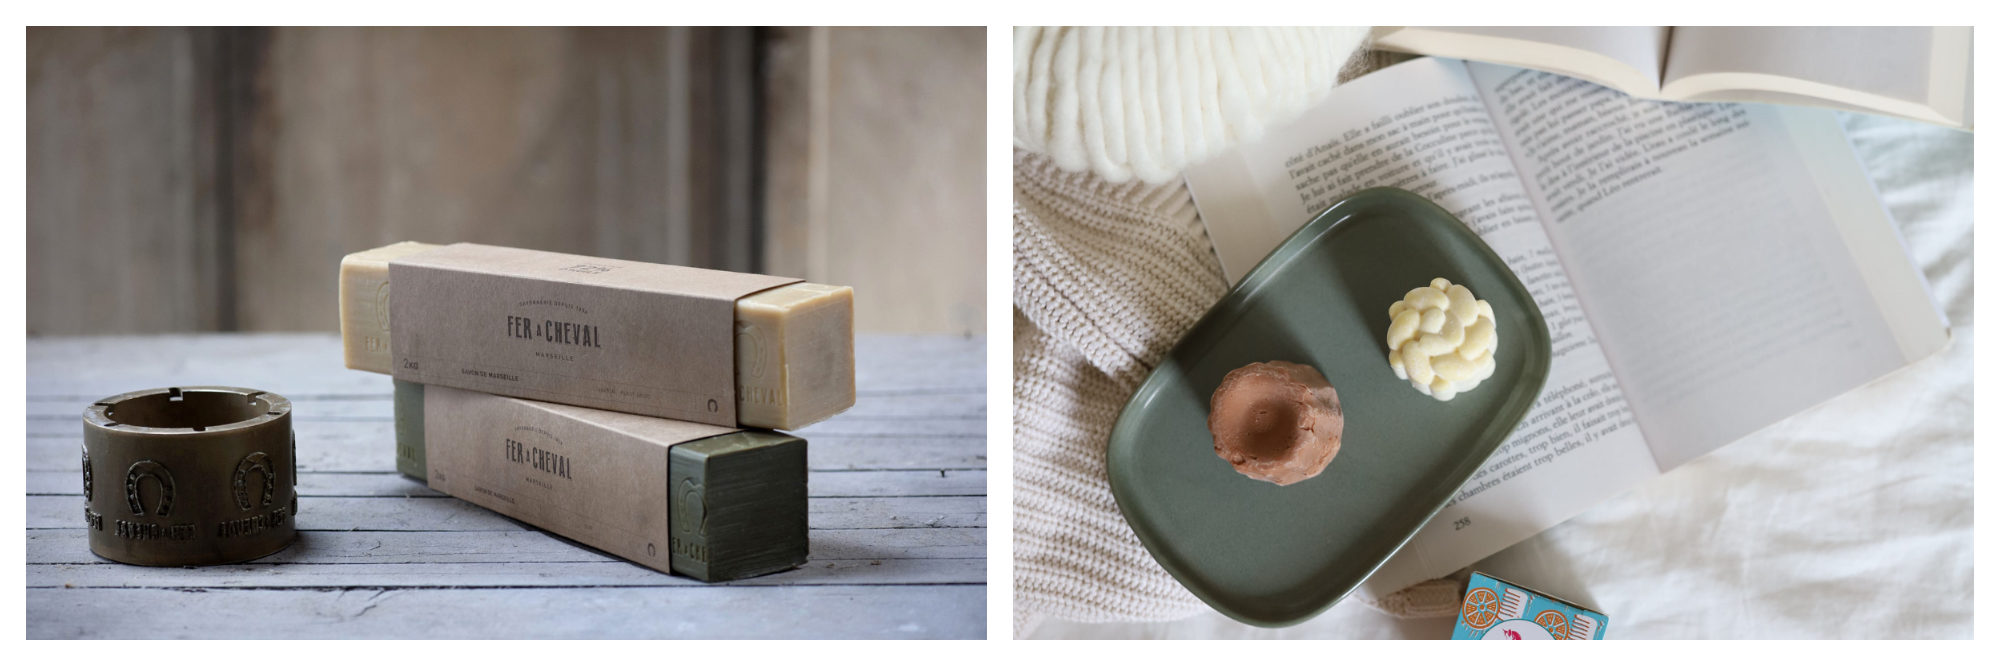 Luxury bars of soap from French brand Fer à Cheval (left) and solid shampoo and body cream by Lamazuna in Paris 'right).